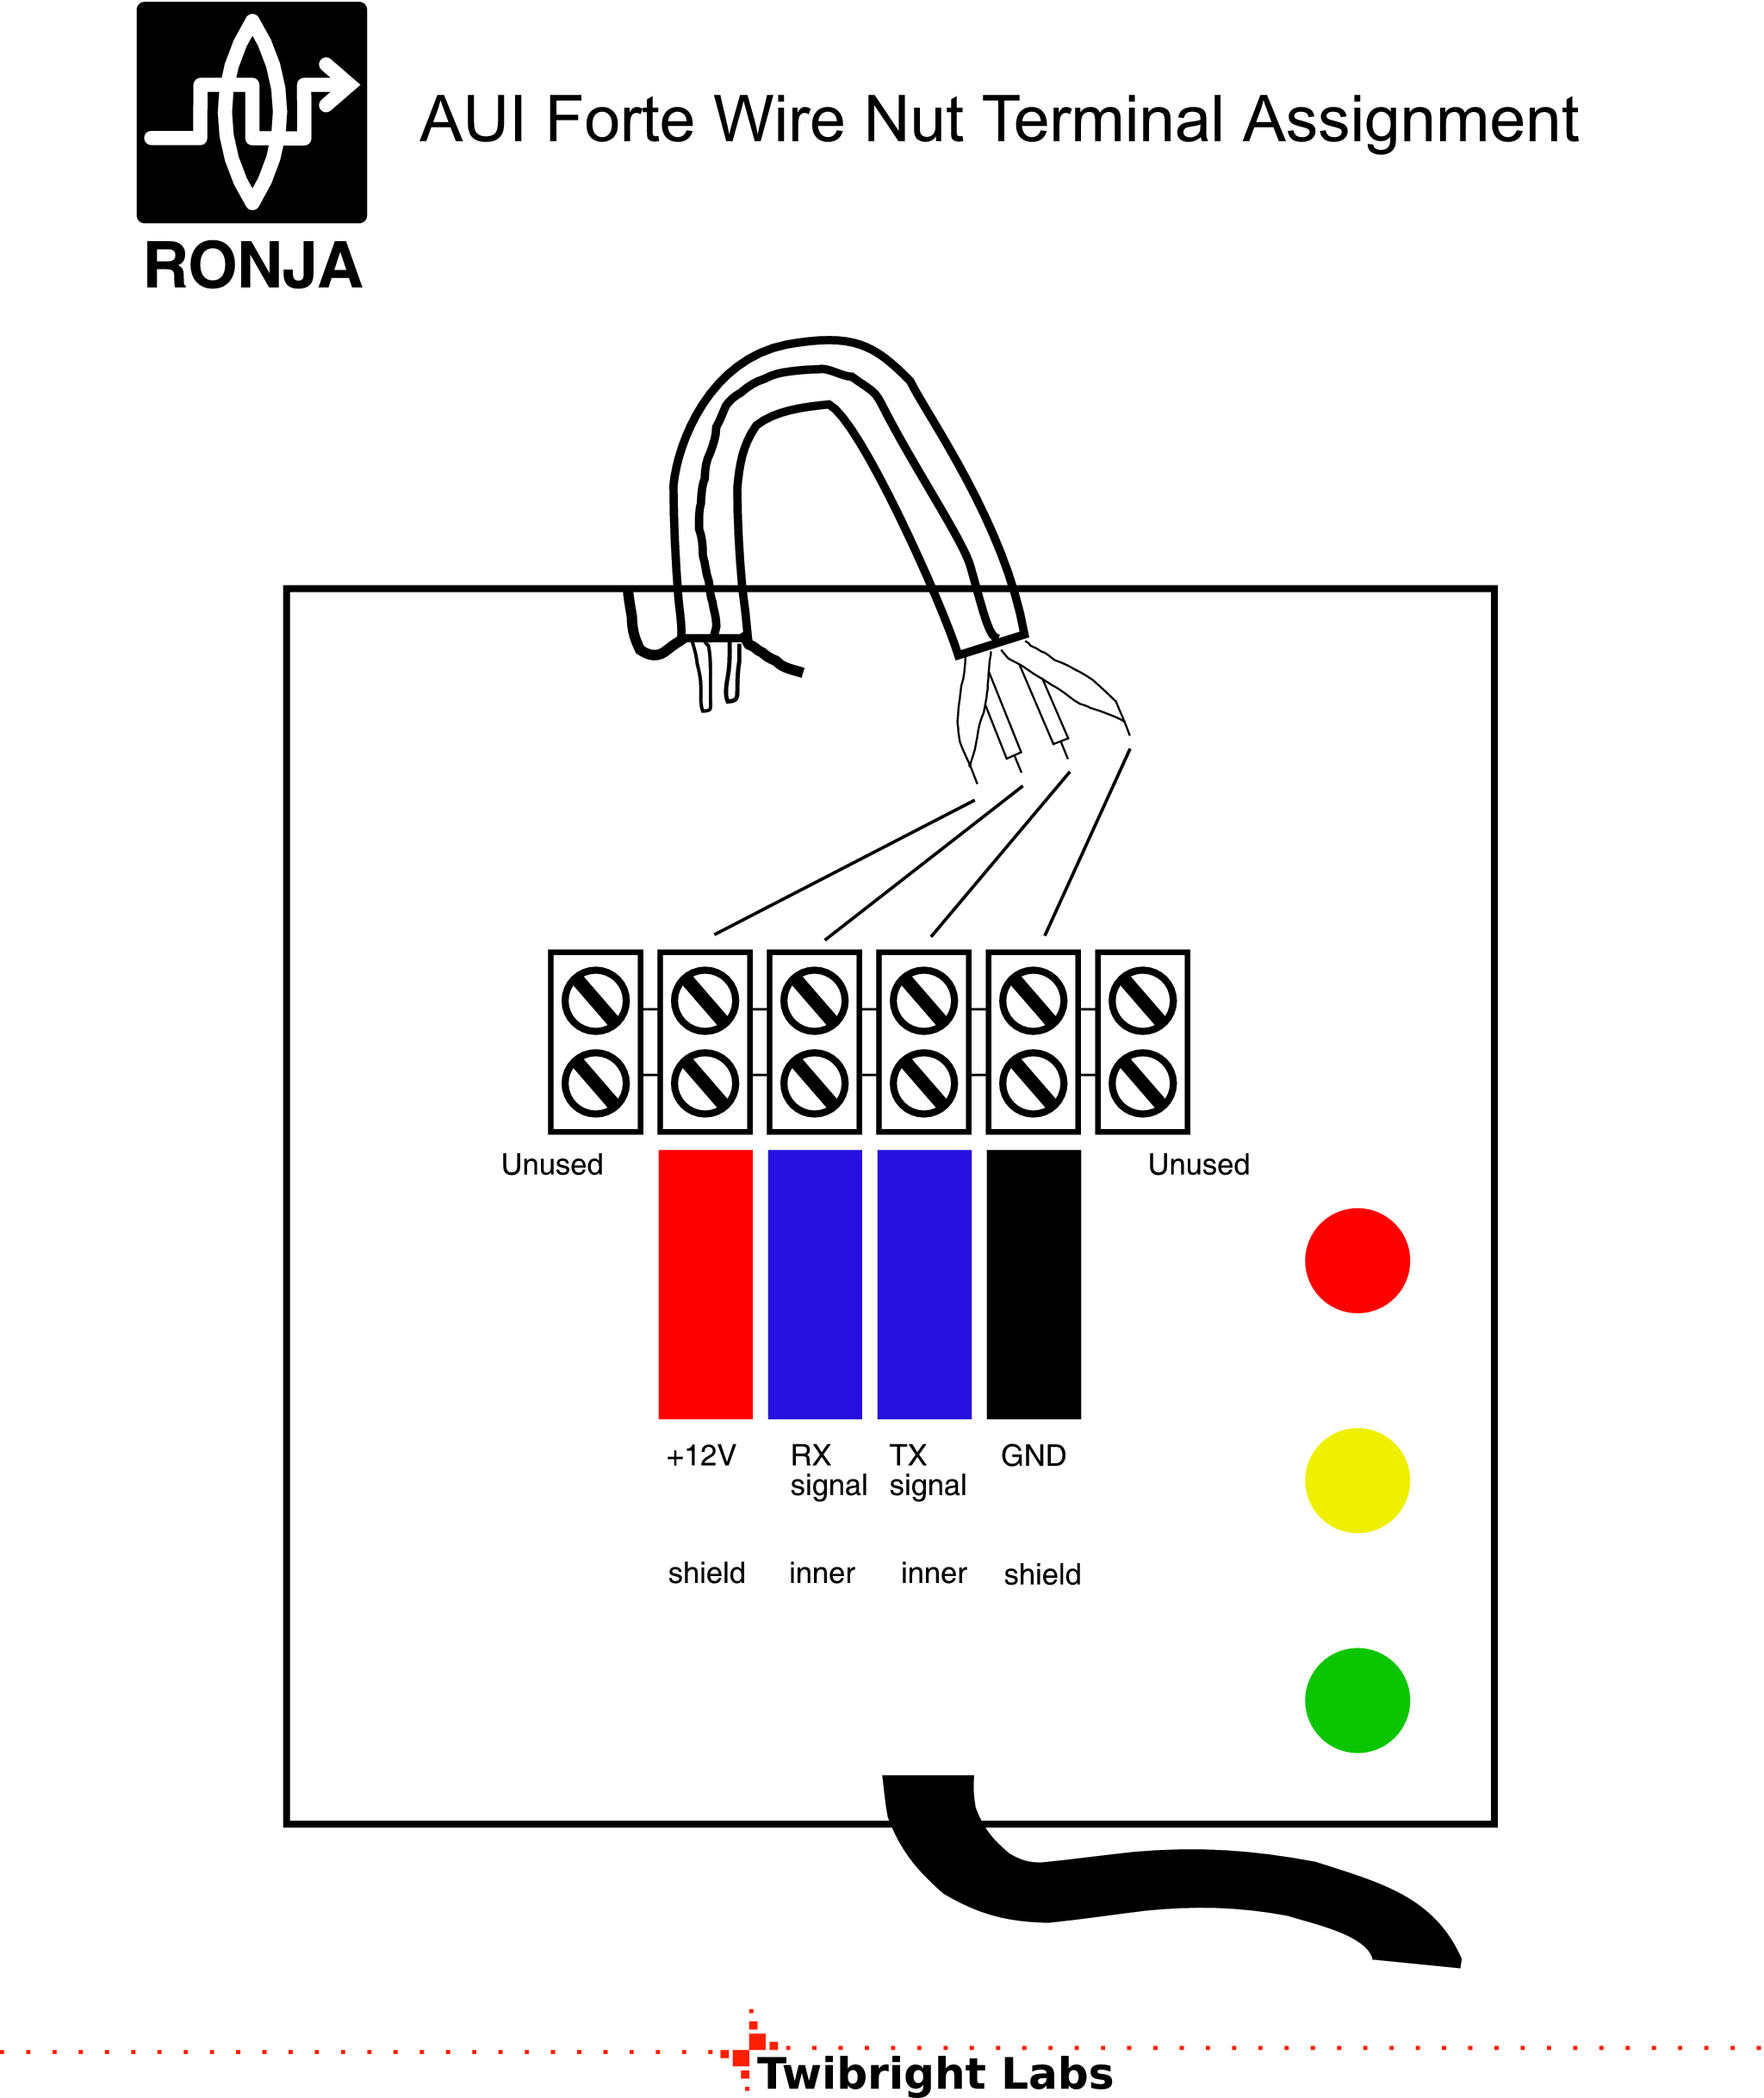 Building Ronja Aui Forte Wire Nut Diagram